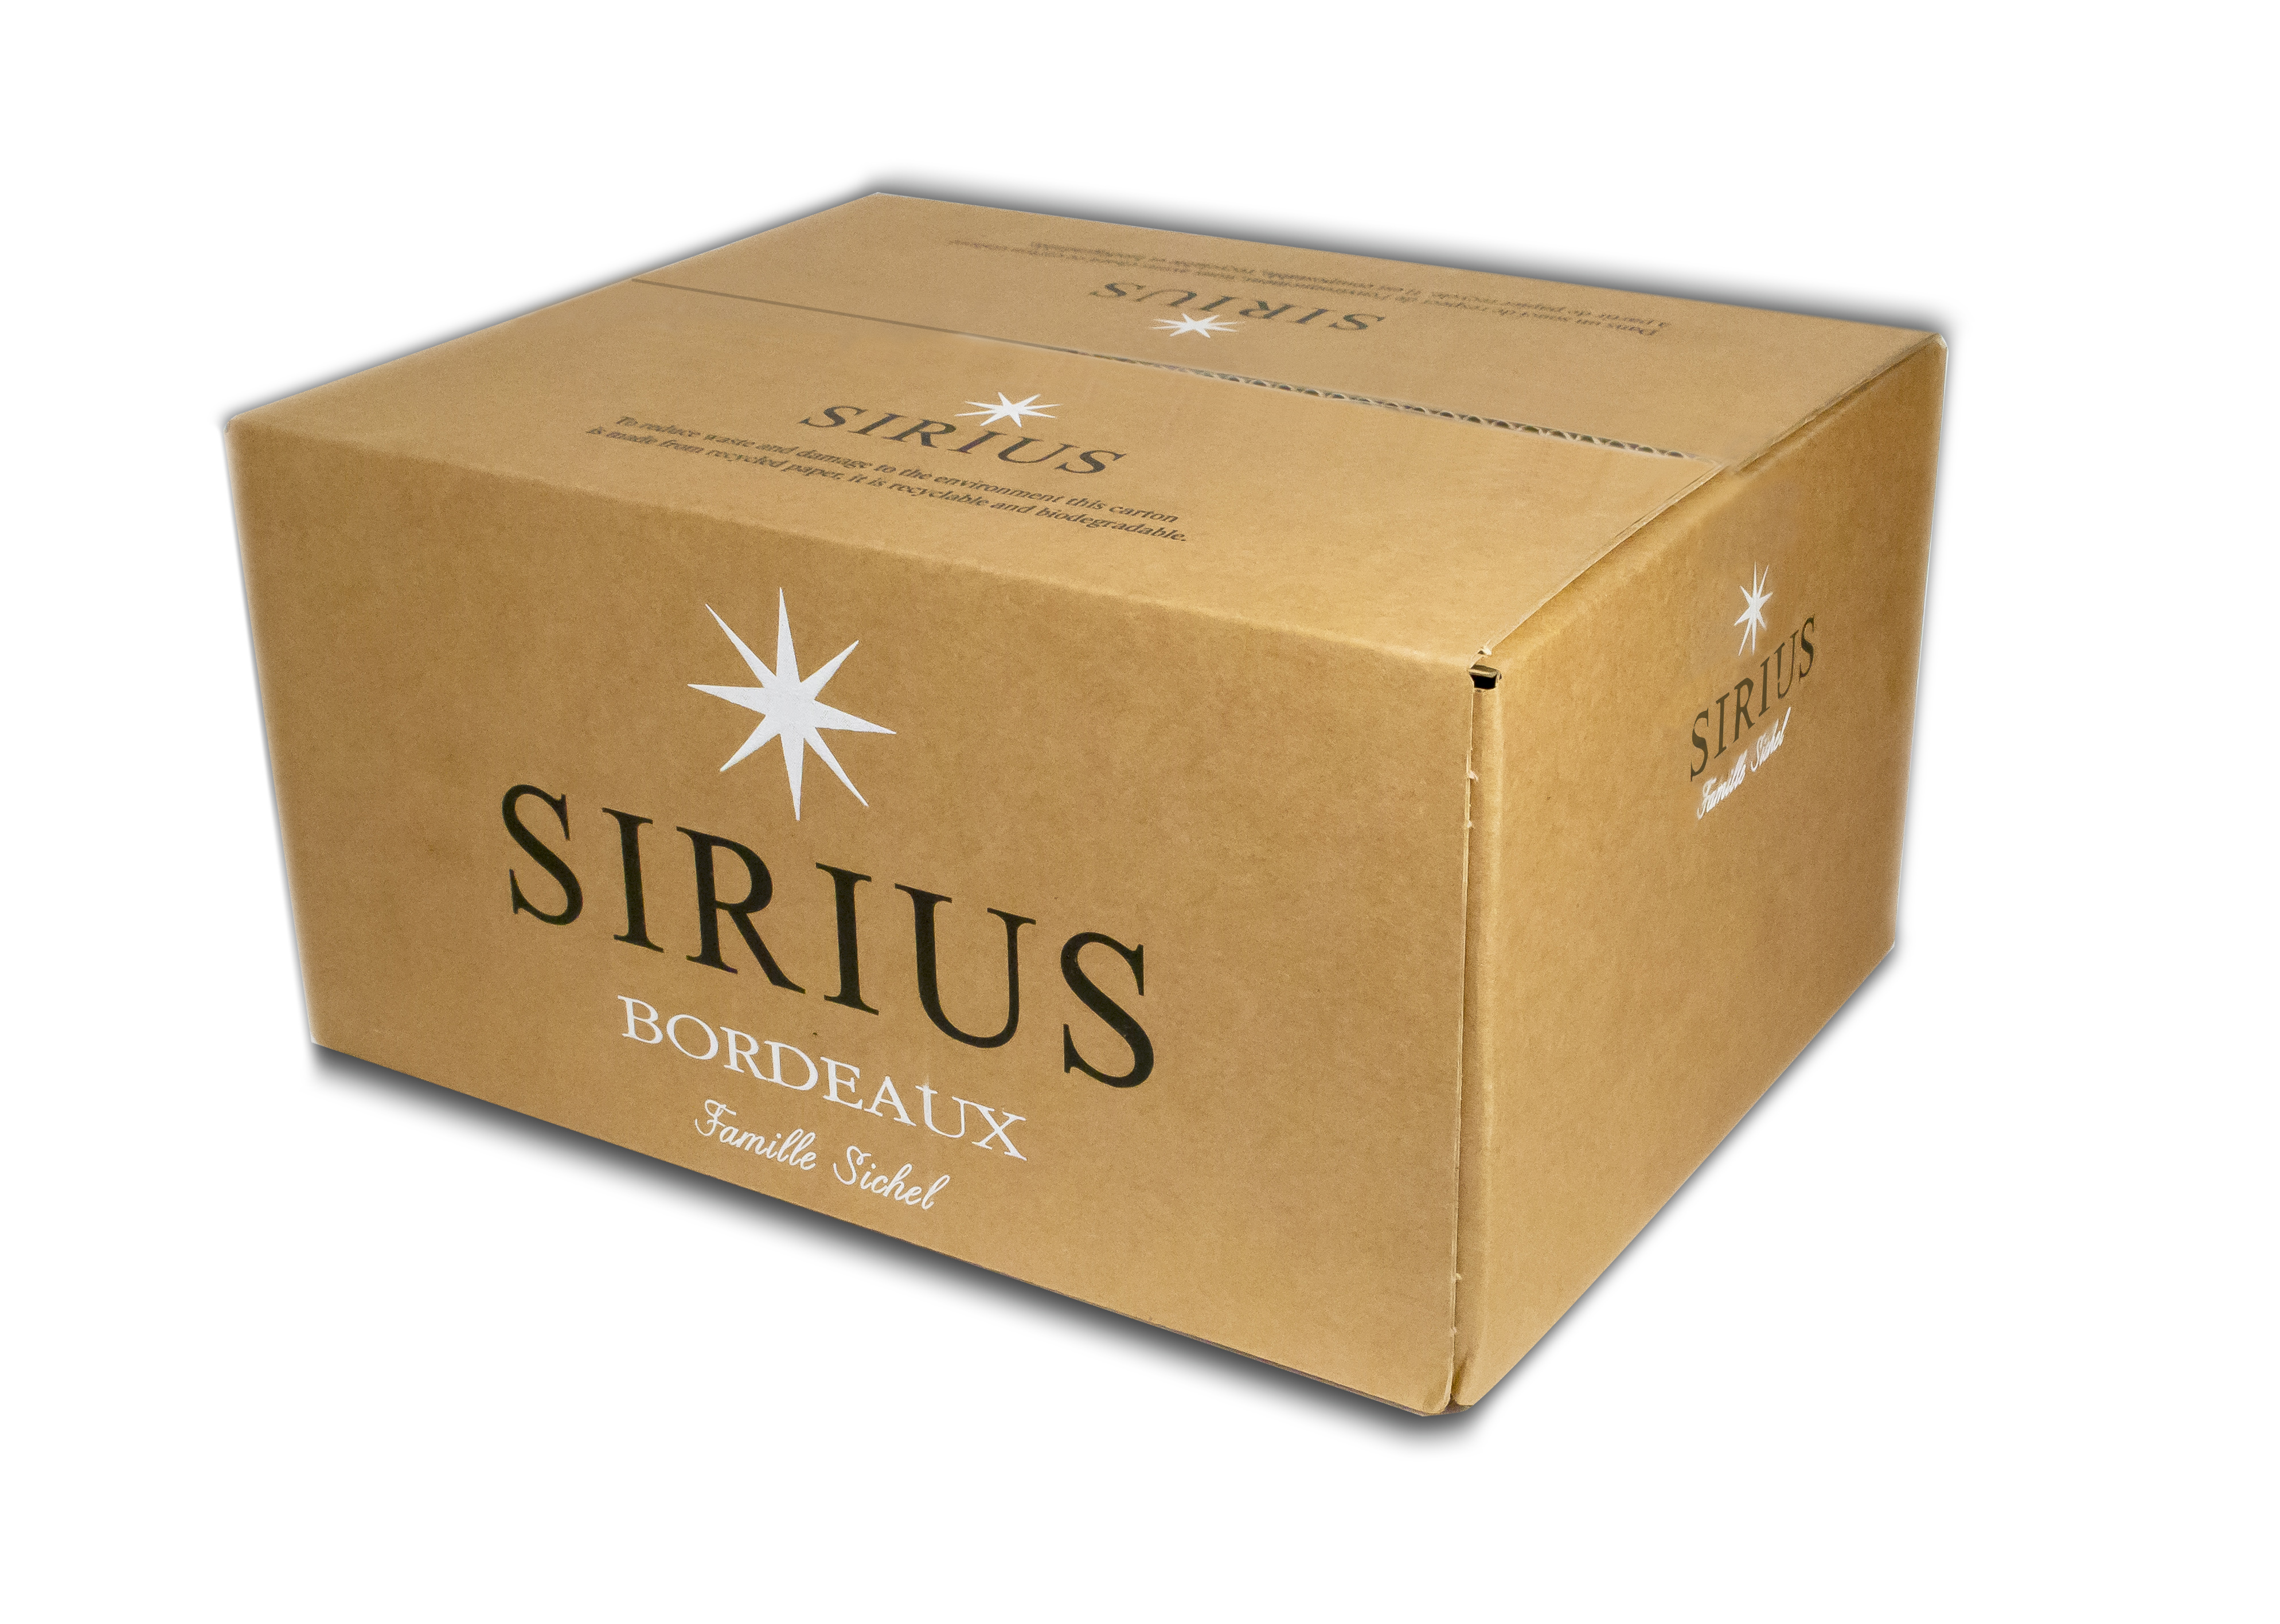 Sirius AOC Bordeaux White 2018